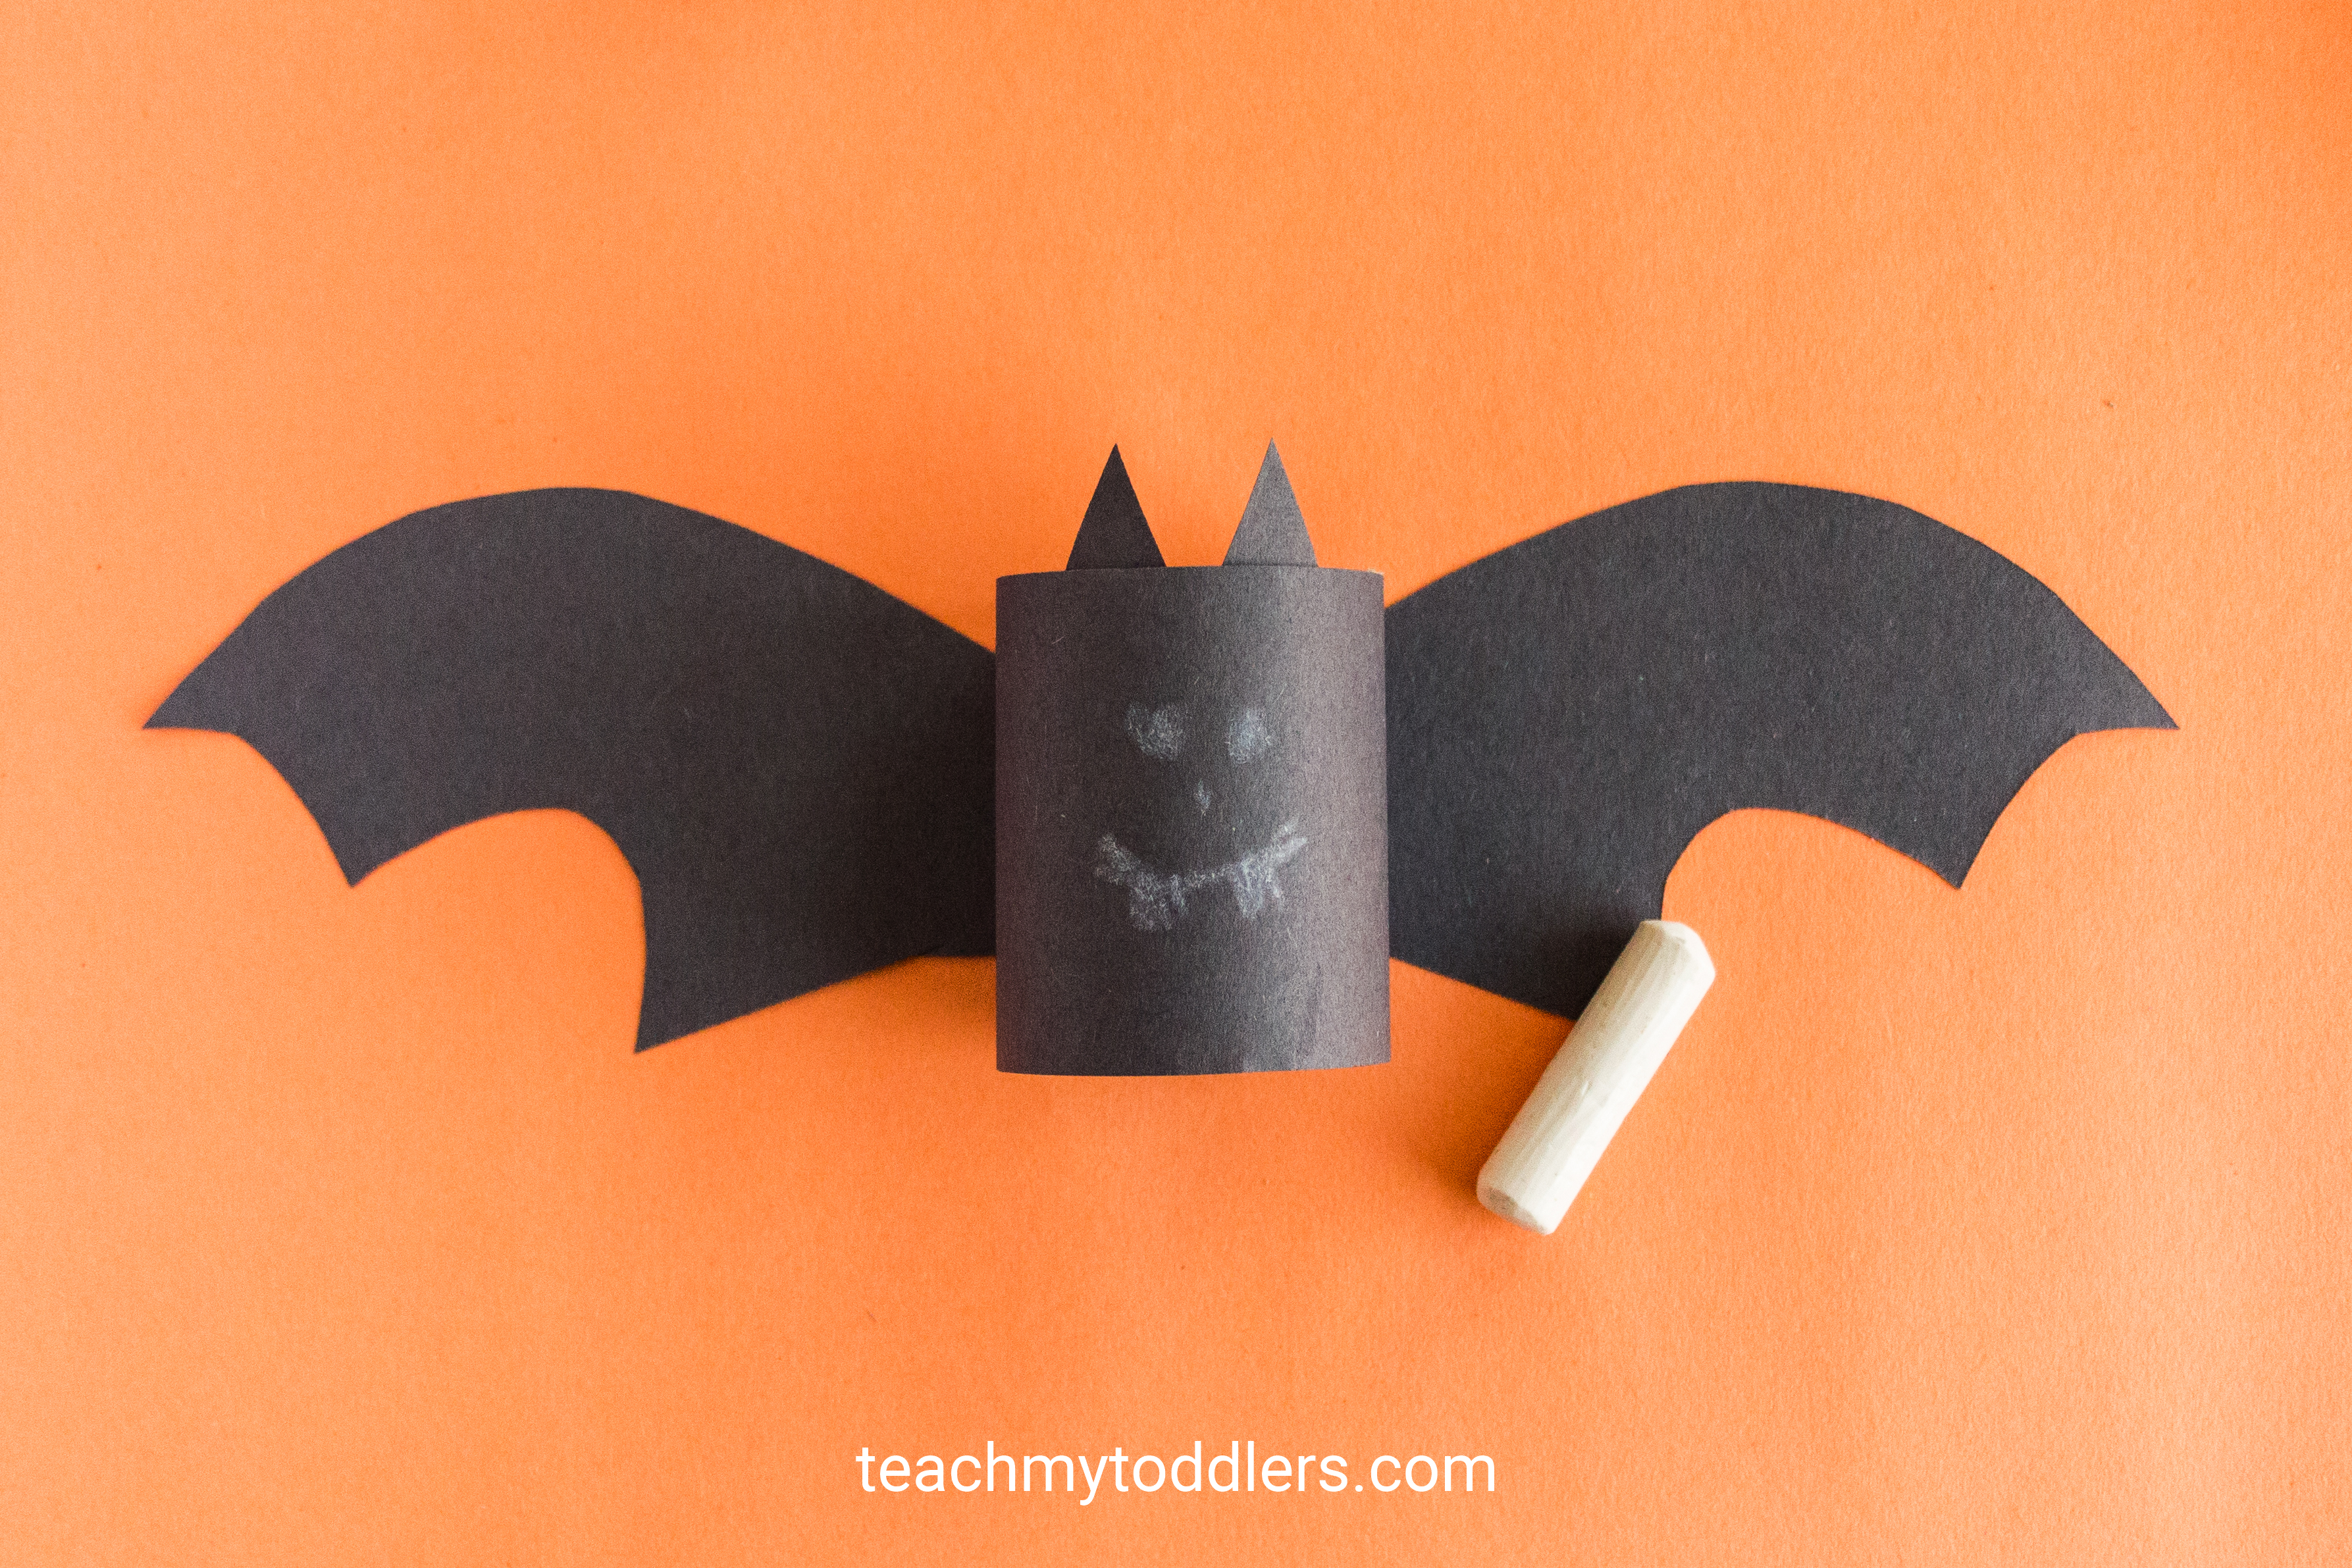 Learn how to make this paper bat craft for toddler's halloween activity